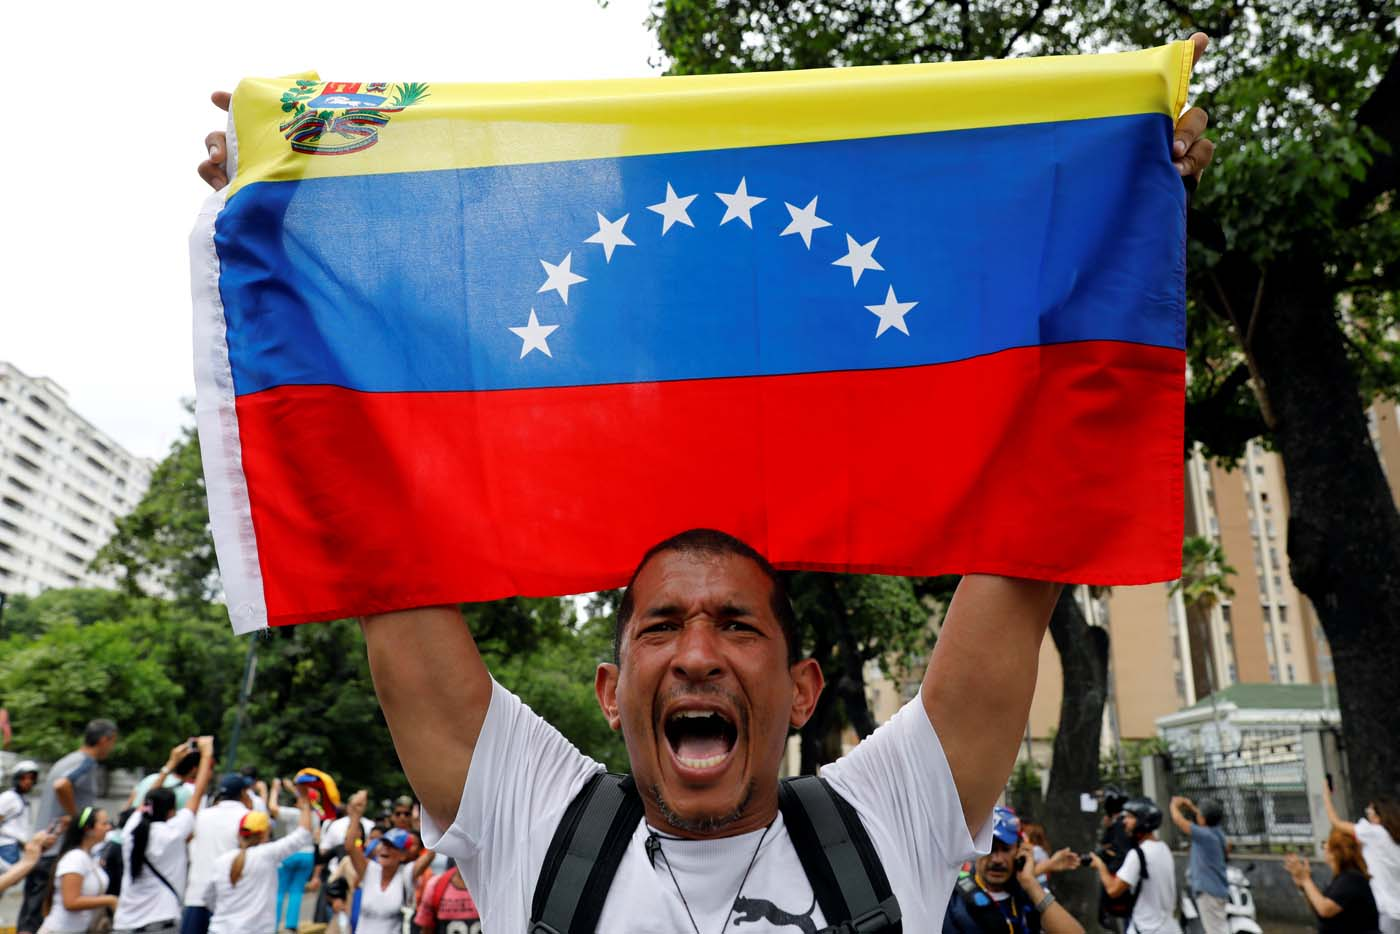 A demonstrator holds a Venezuelan flag as he takes part in a rally to honour victims of violence during a protest against Venezuela's President Nicolas Maduro's government in Caracas, Venezuela, April 22, 2017. REUTERS/Carlos Garcia Rawlins TPX IMAGES OF THE DAY